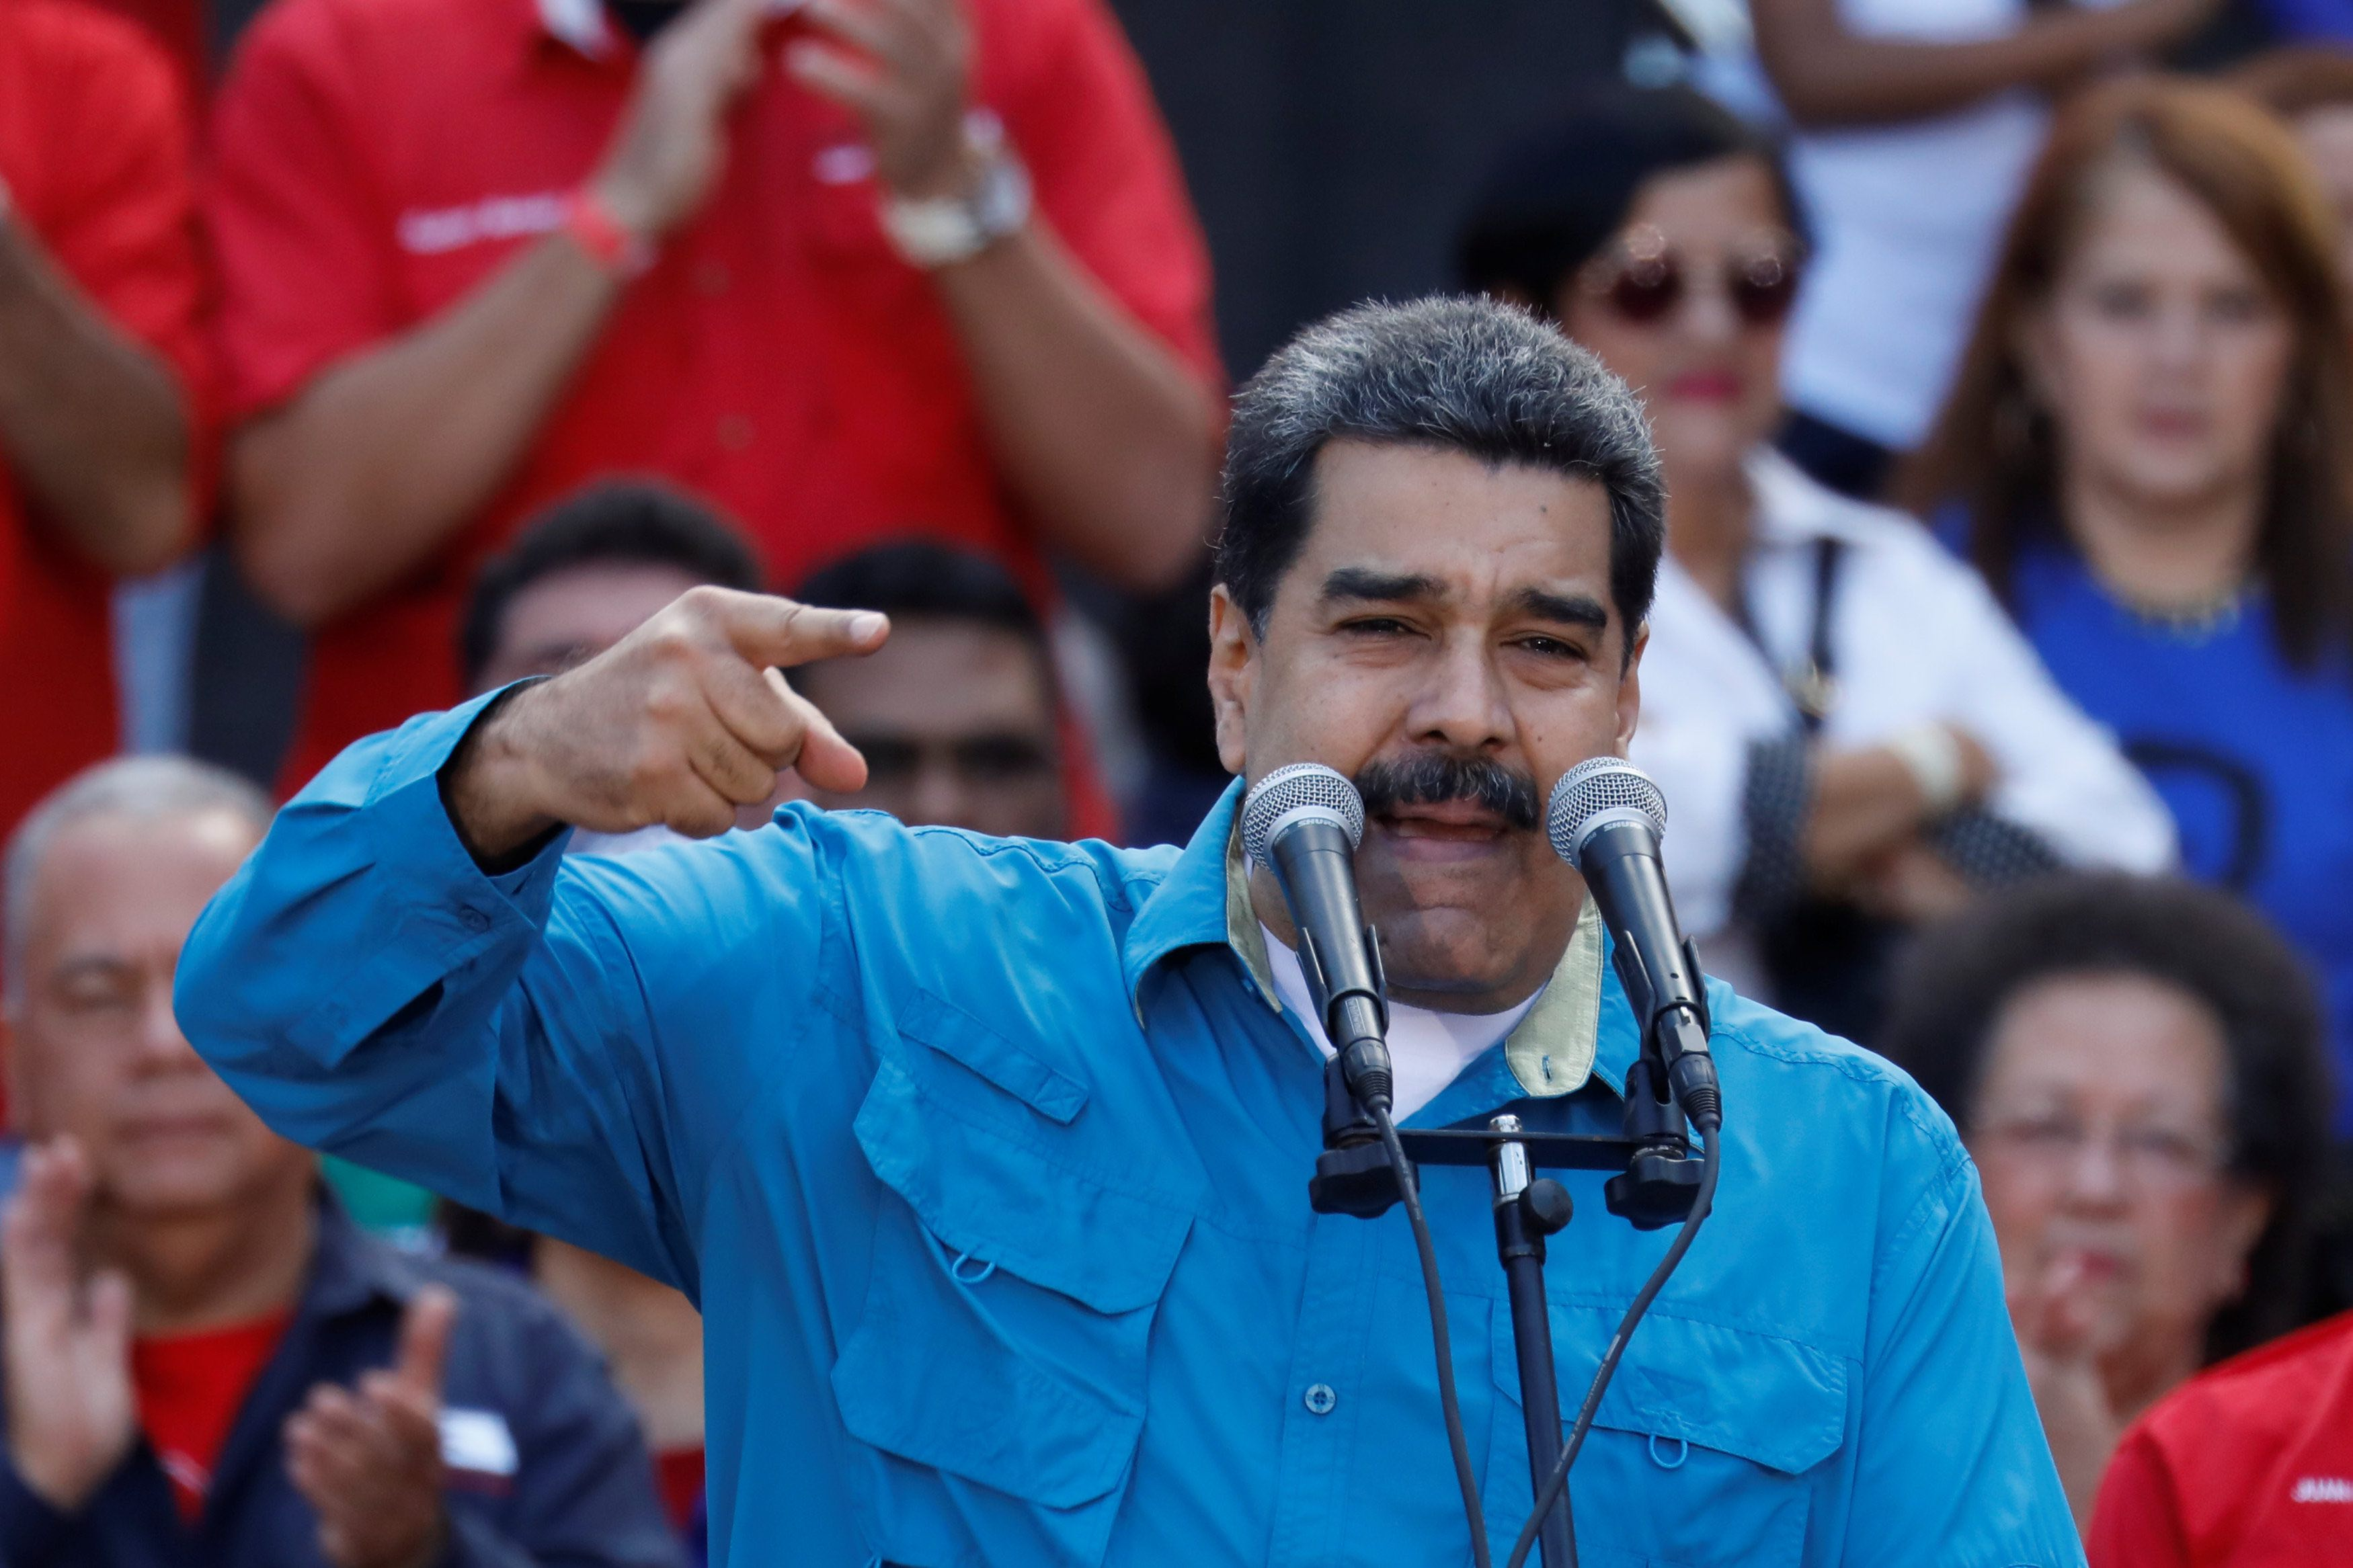 Maduro condemned for snap election against jailed opponents